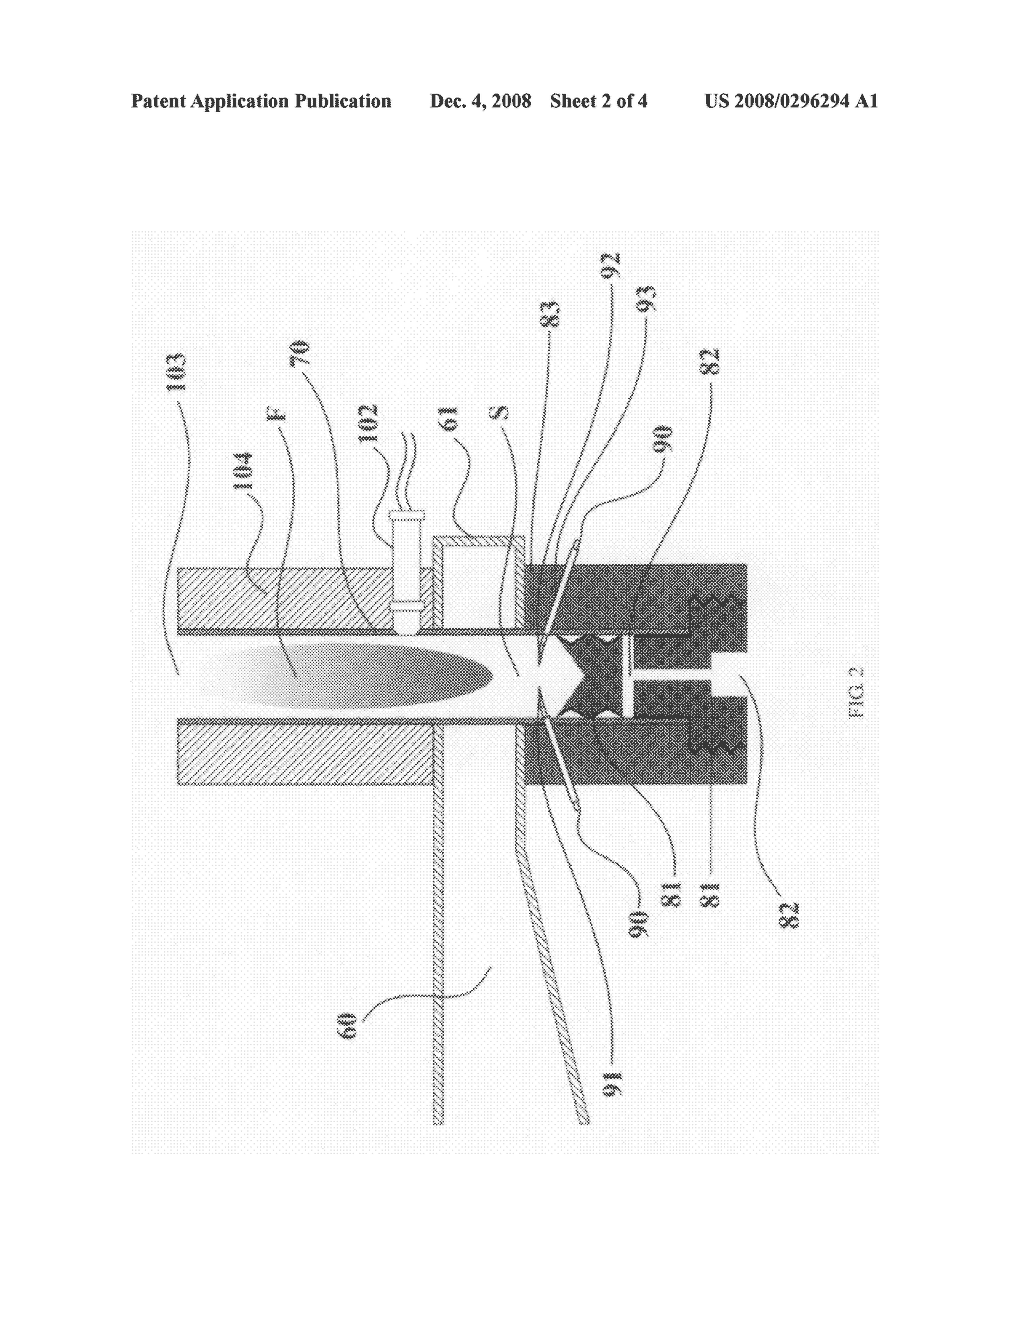 Pure Steam Torch By Microwaves For Reforming Of Hydrocarbon Fuels Circuit A Diagram Schematic And Image 03